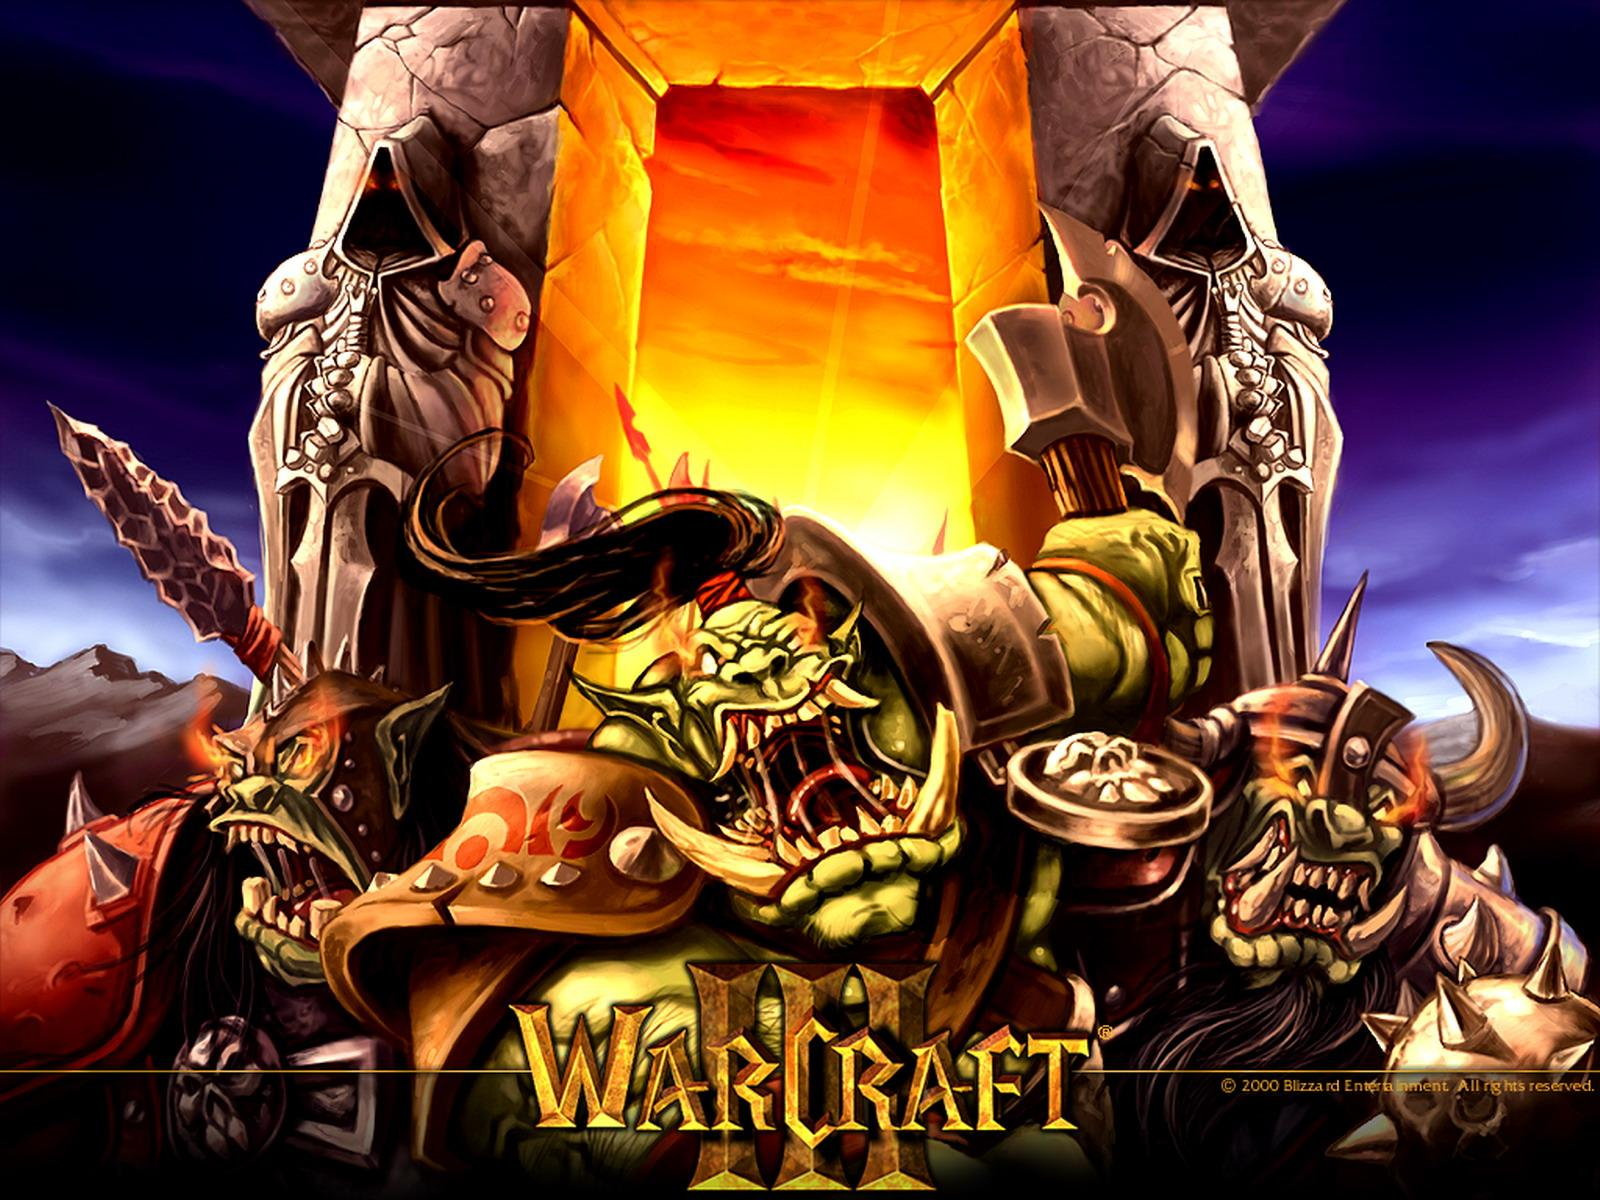 1080p warcraft 3 wallpaper